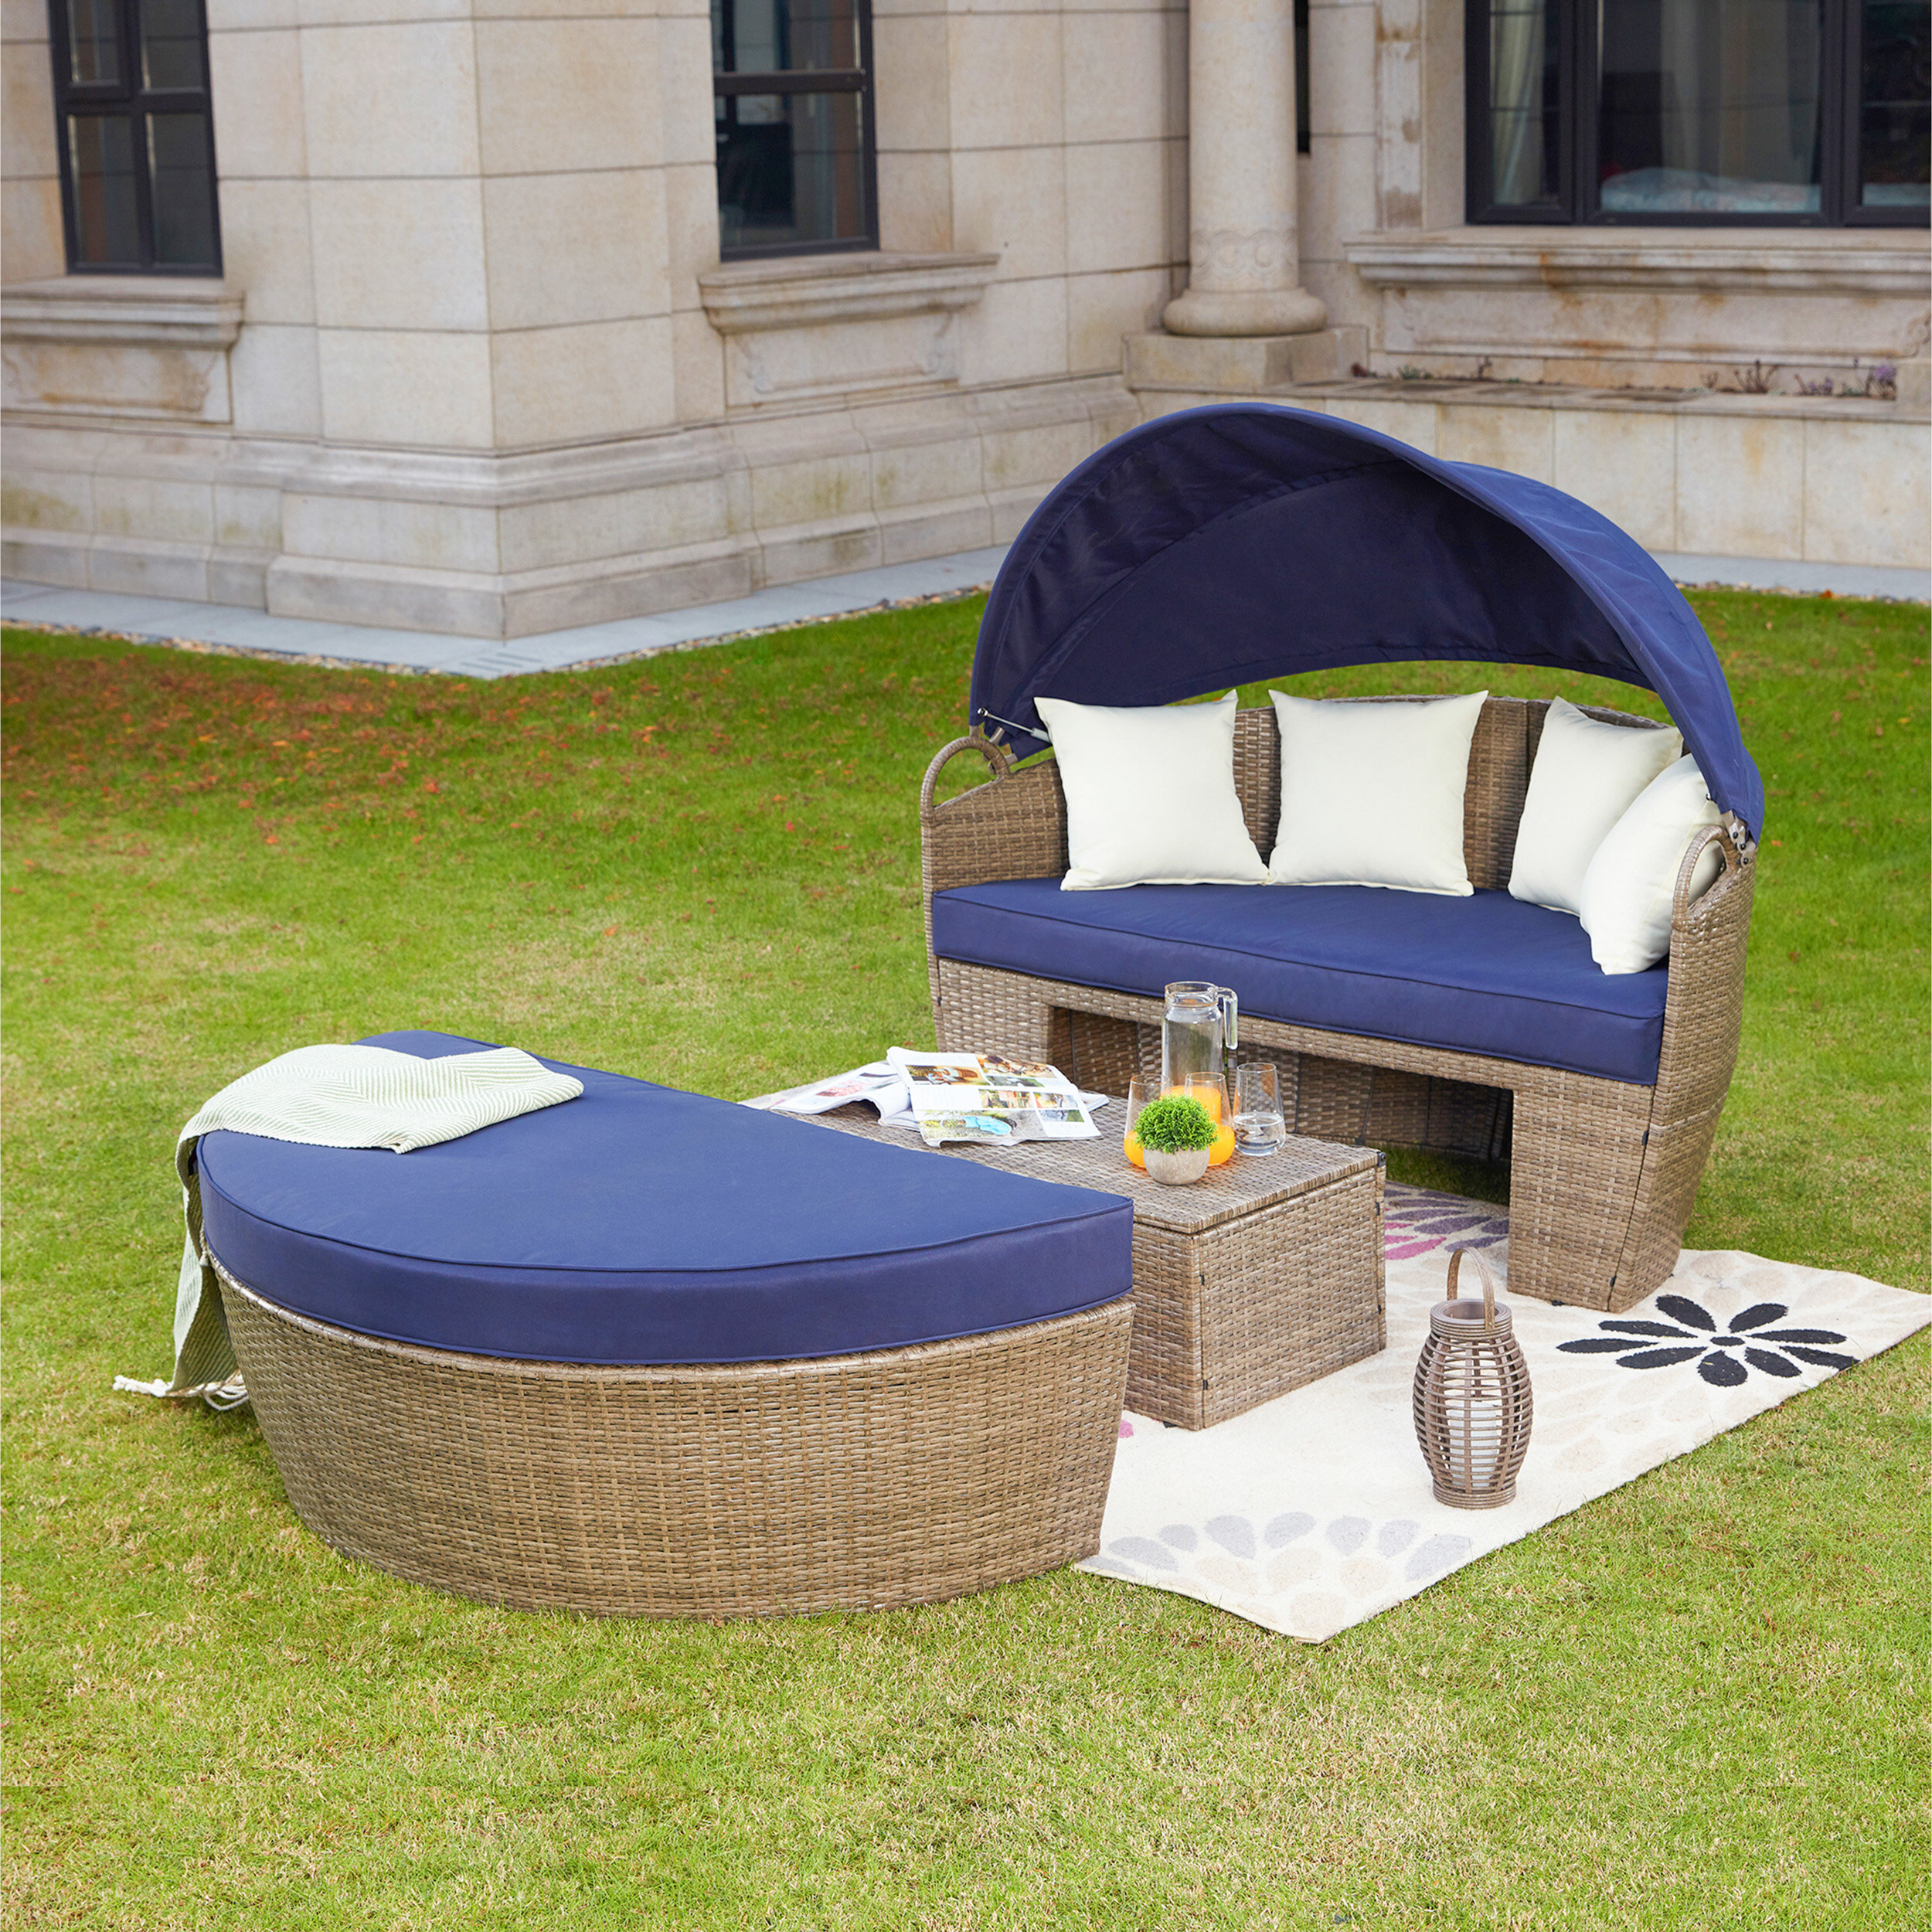 Fansler Patio Daybed With Cushions With Famous Patio Daybeds With Cushions (View 7 of 20)